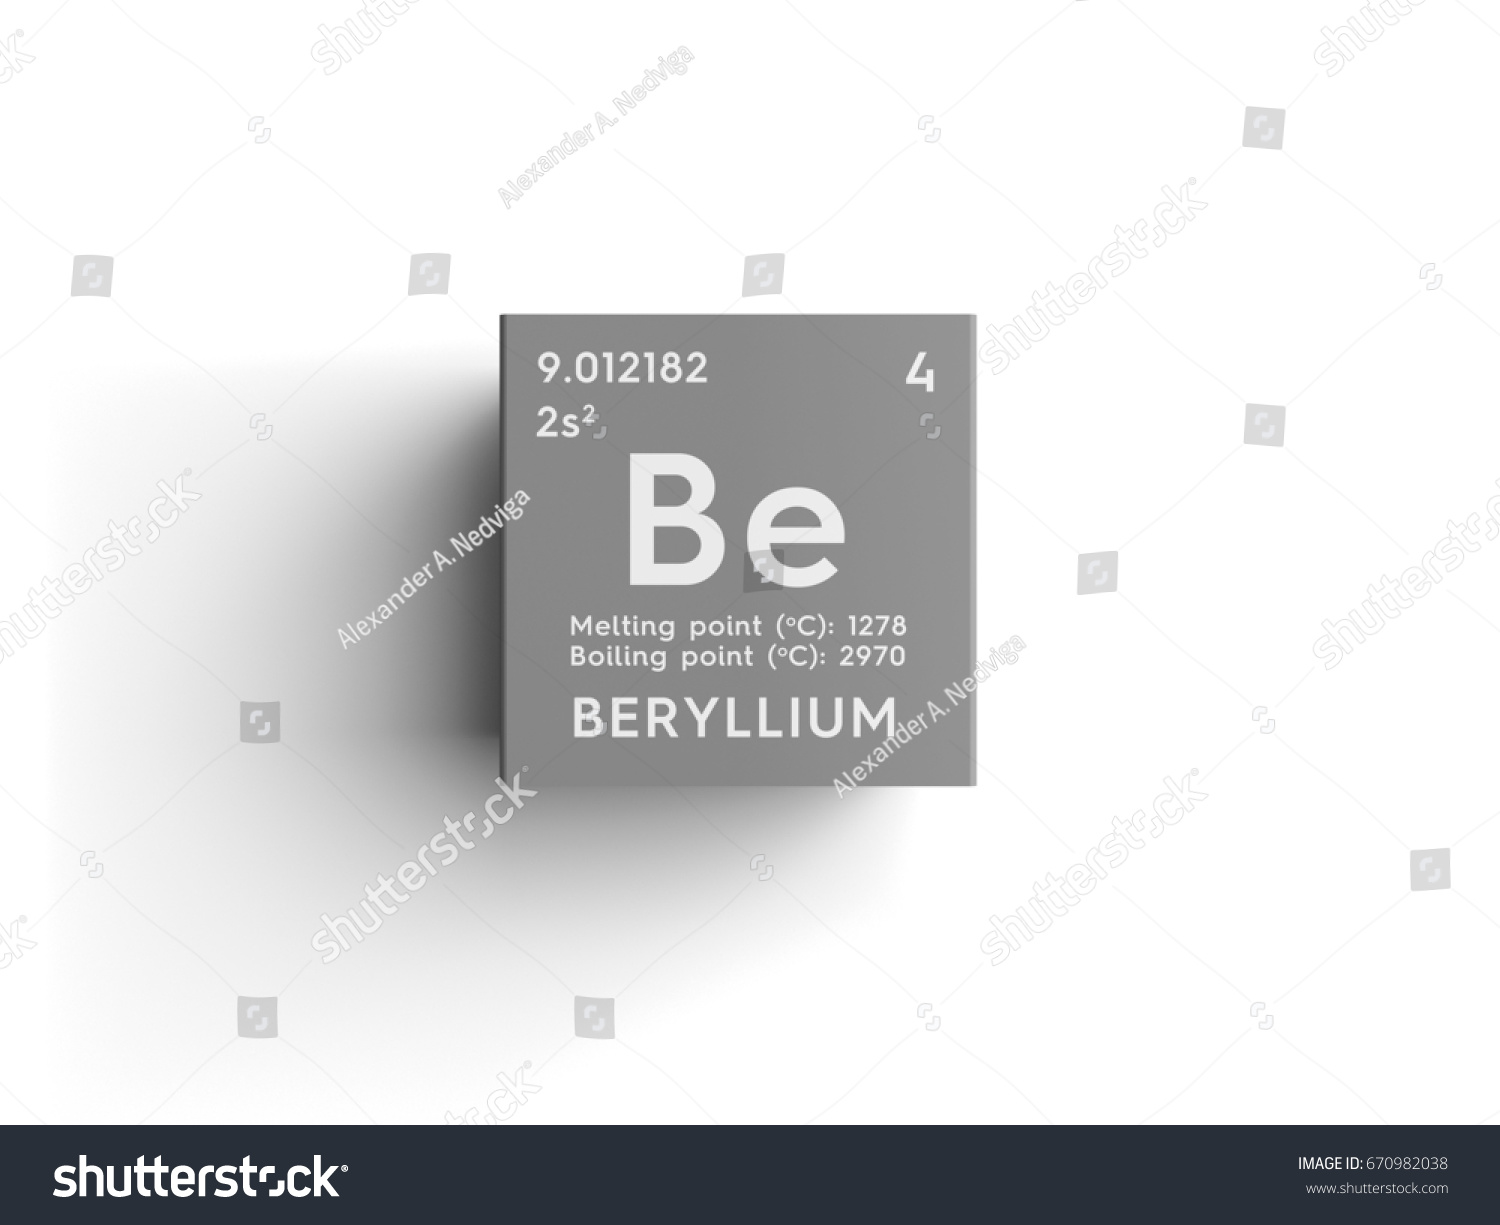 Beryllium in periodic table gallery periodic table images beryllium symbol periodic table gallery periodic table images beryllium symbol periodic table image collections periodic table gamestrikefo Image collections